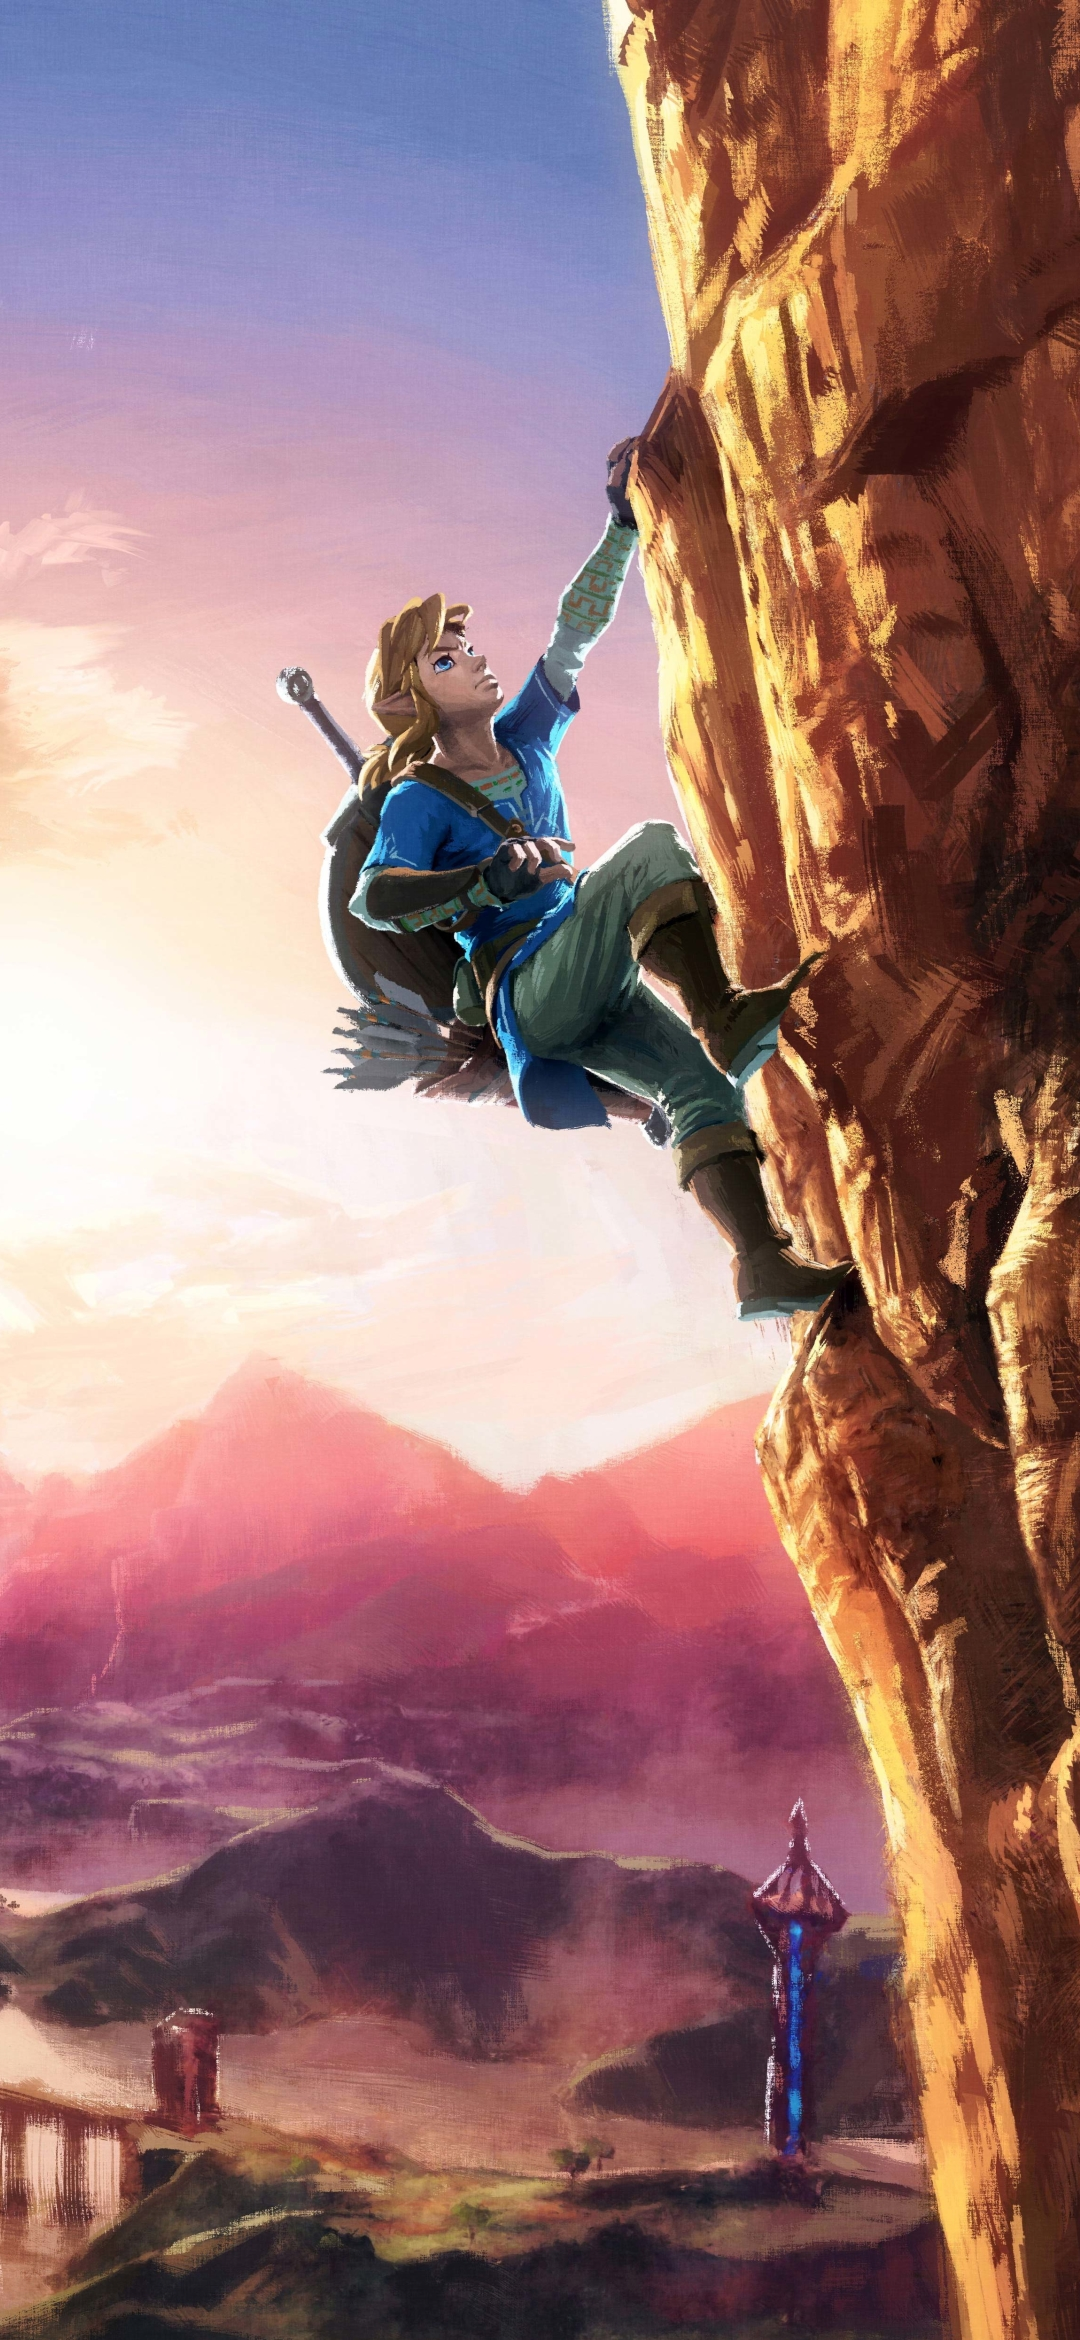 1080x2340 The Legend Of Zelda Breath Of The Wild 8k 1080x2340